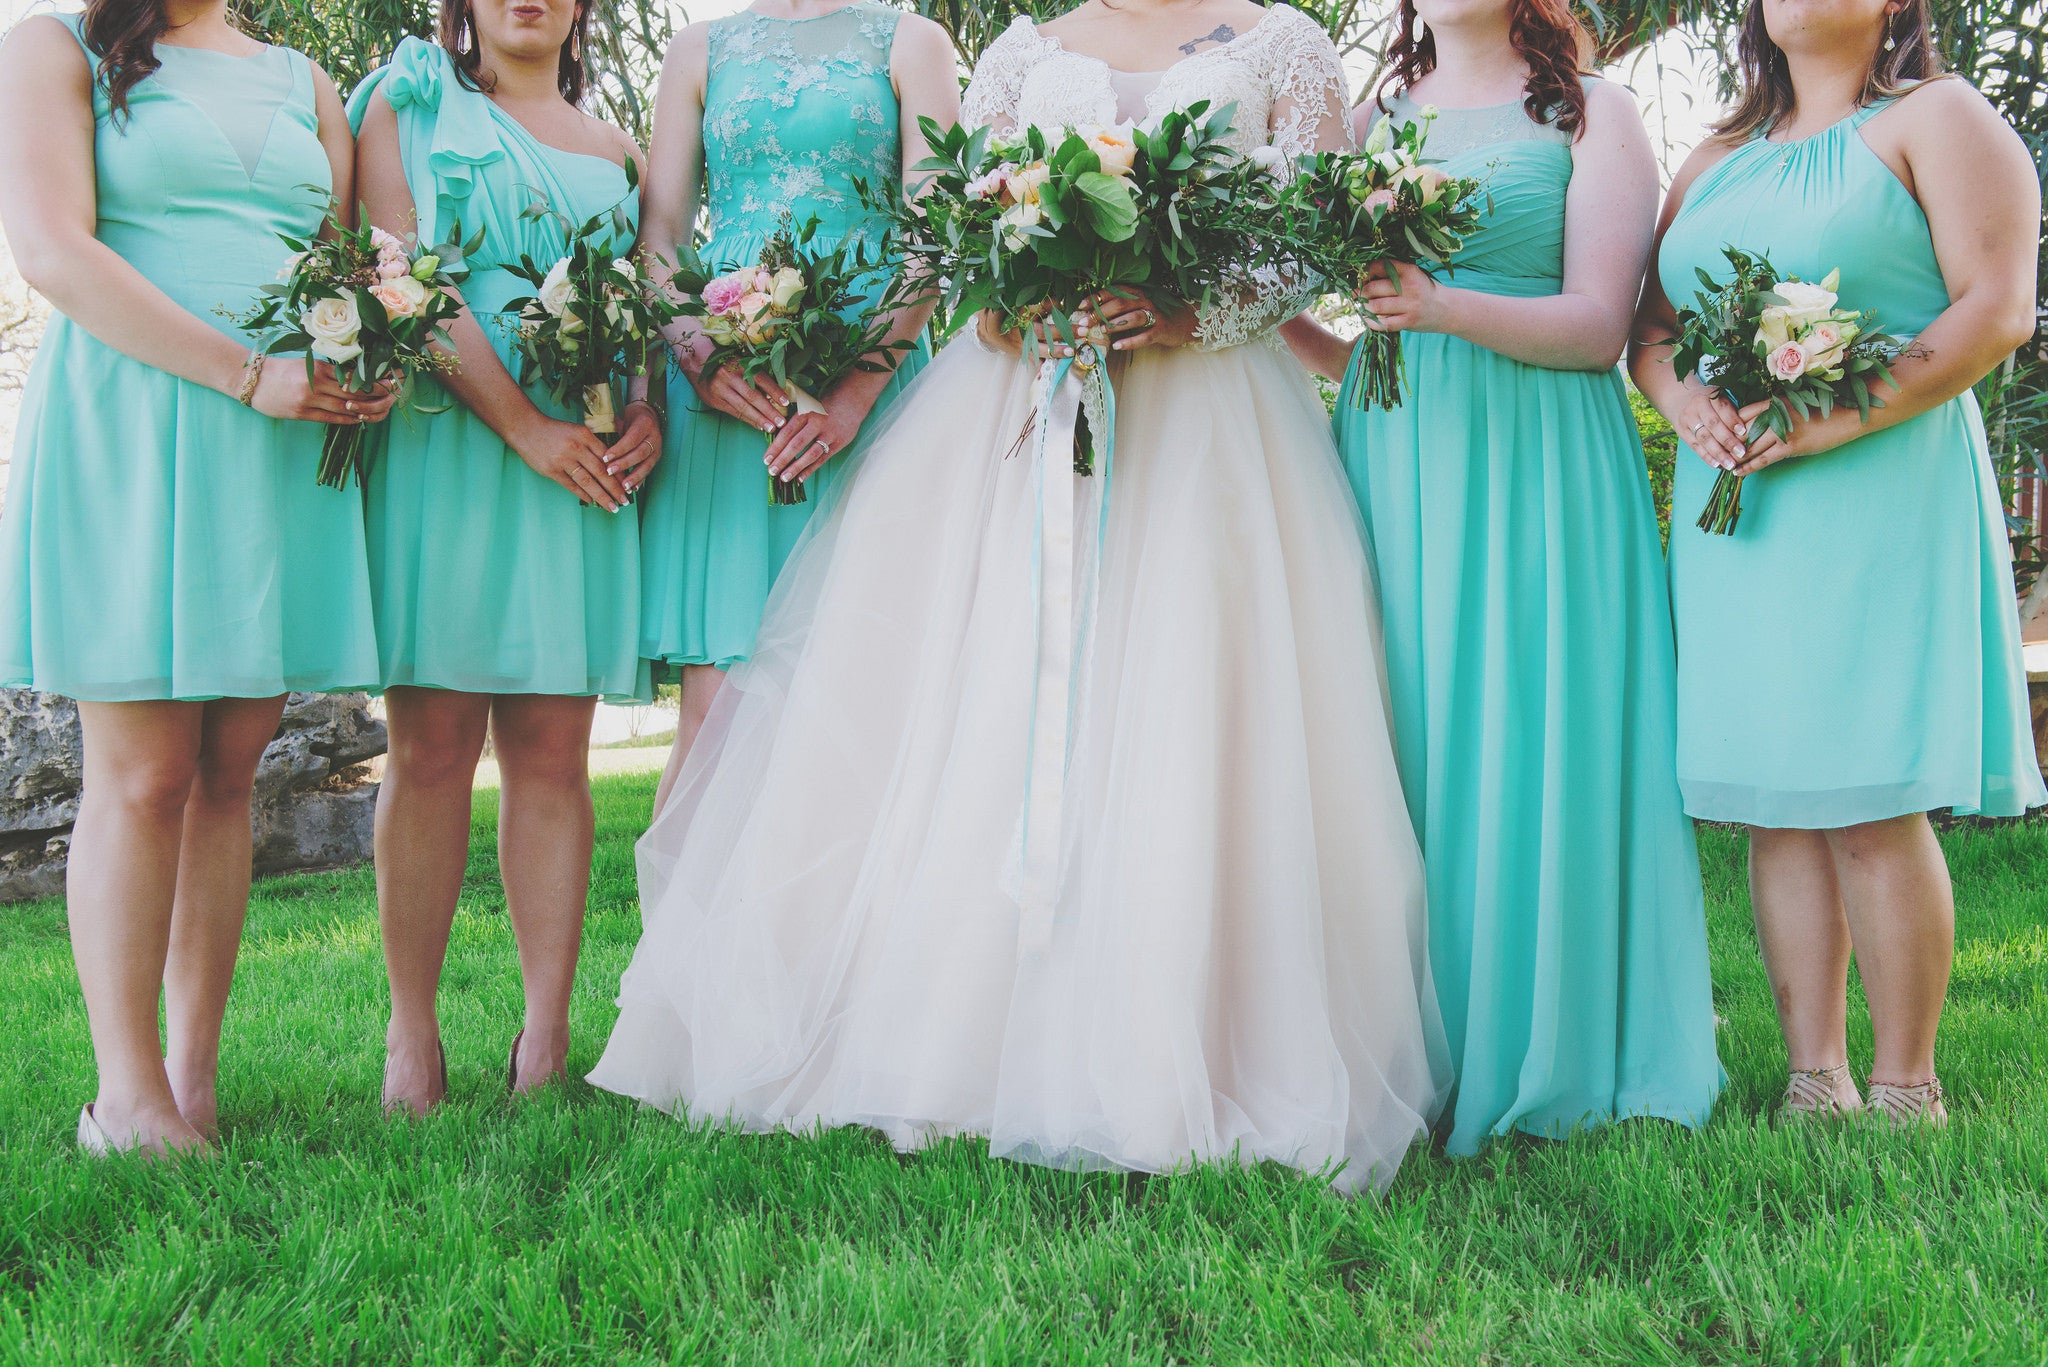 How to Make Your Maid of Honor Stand Out